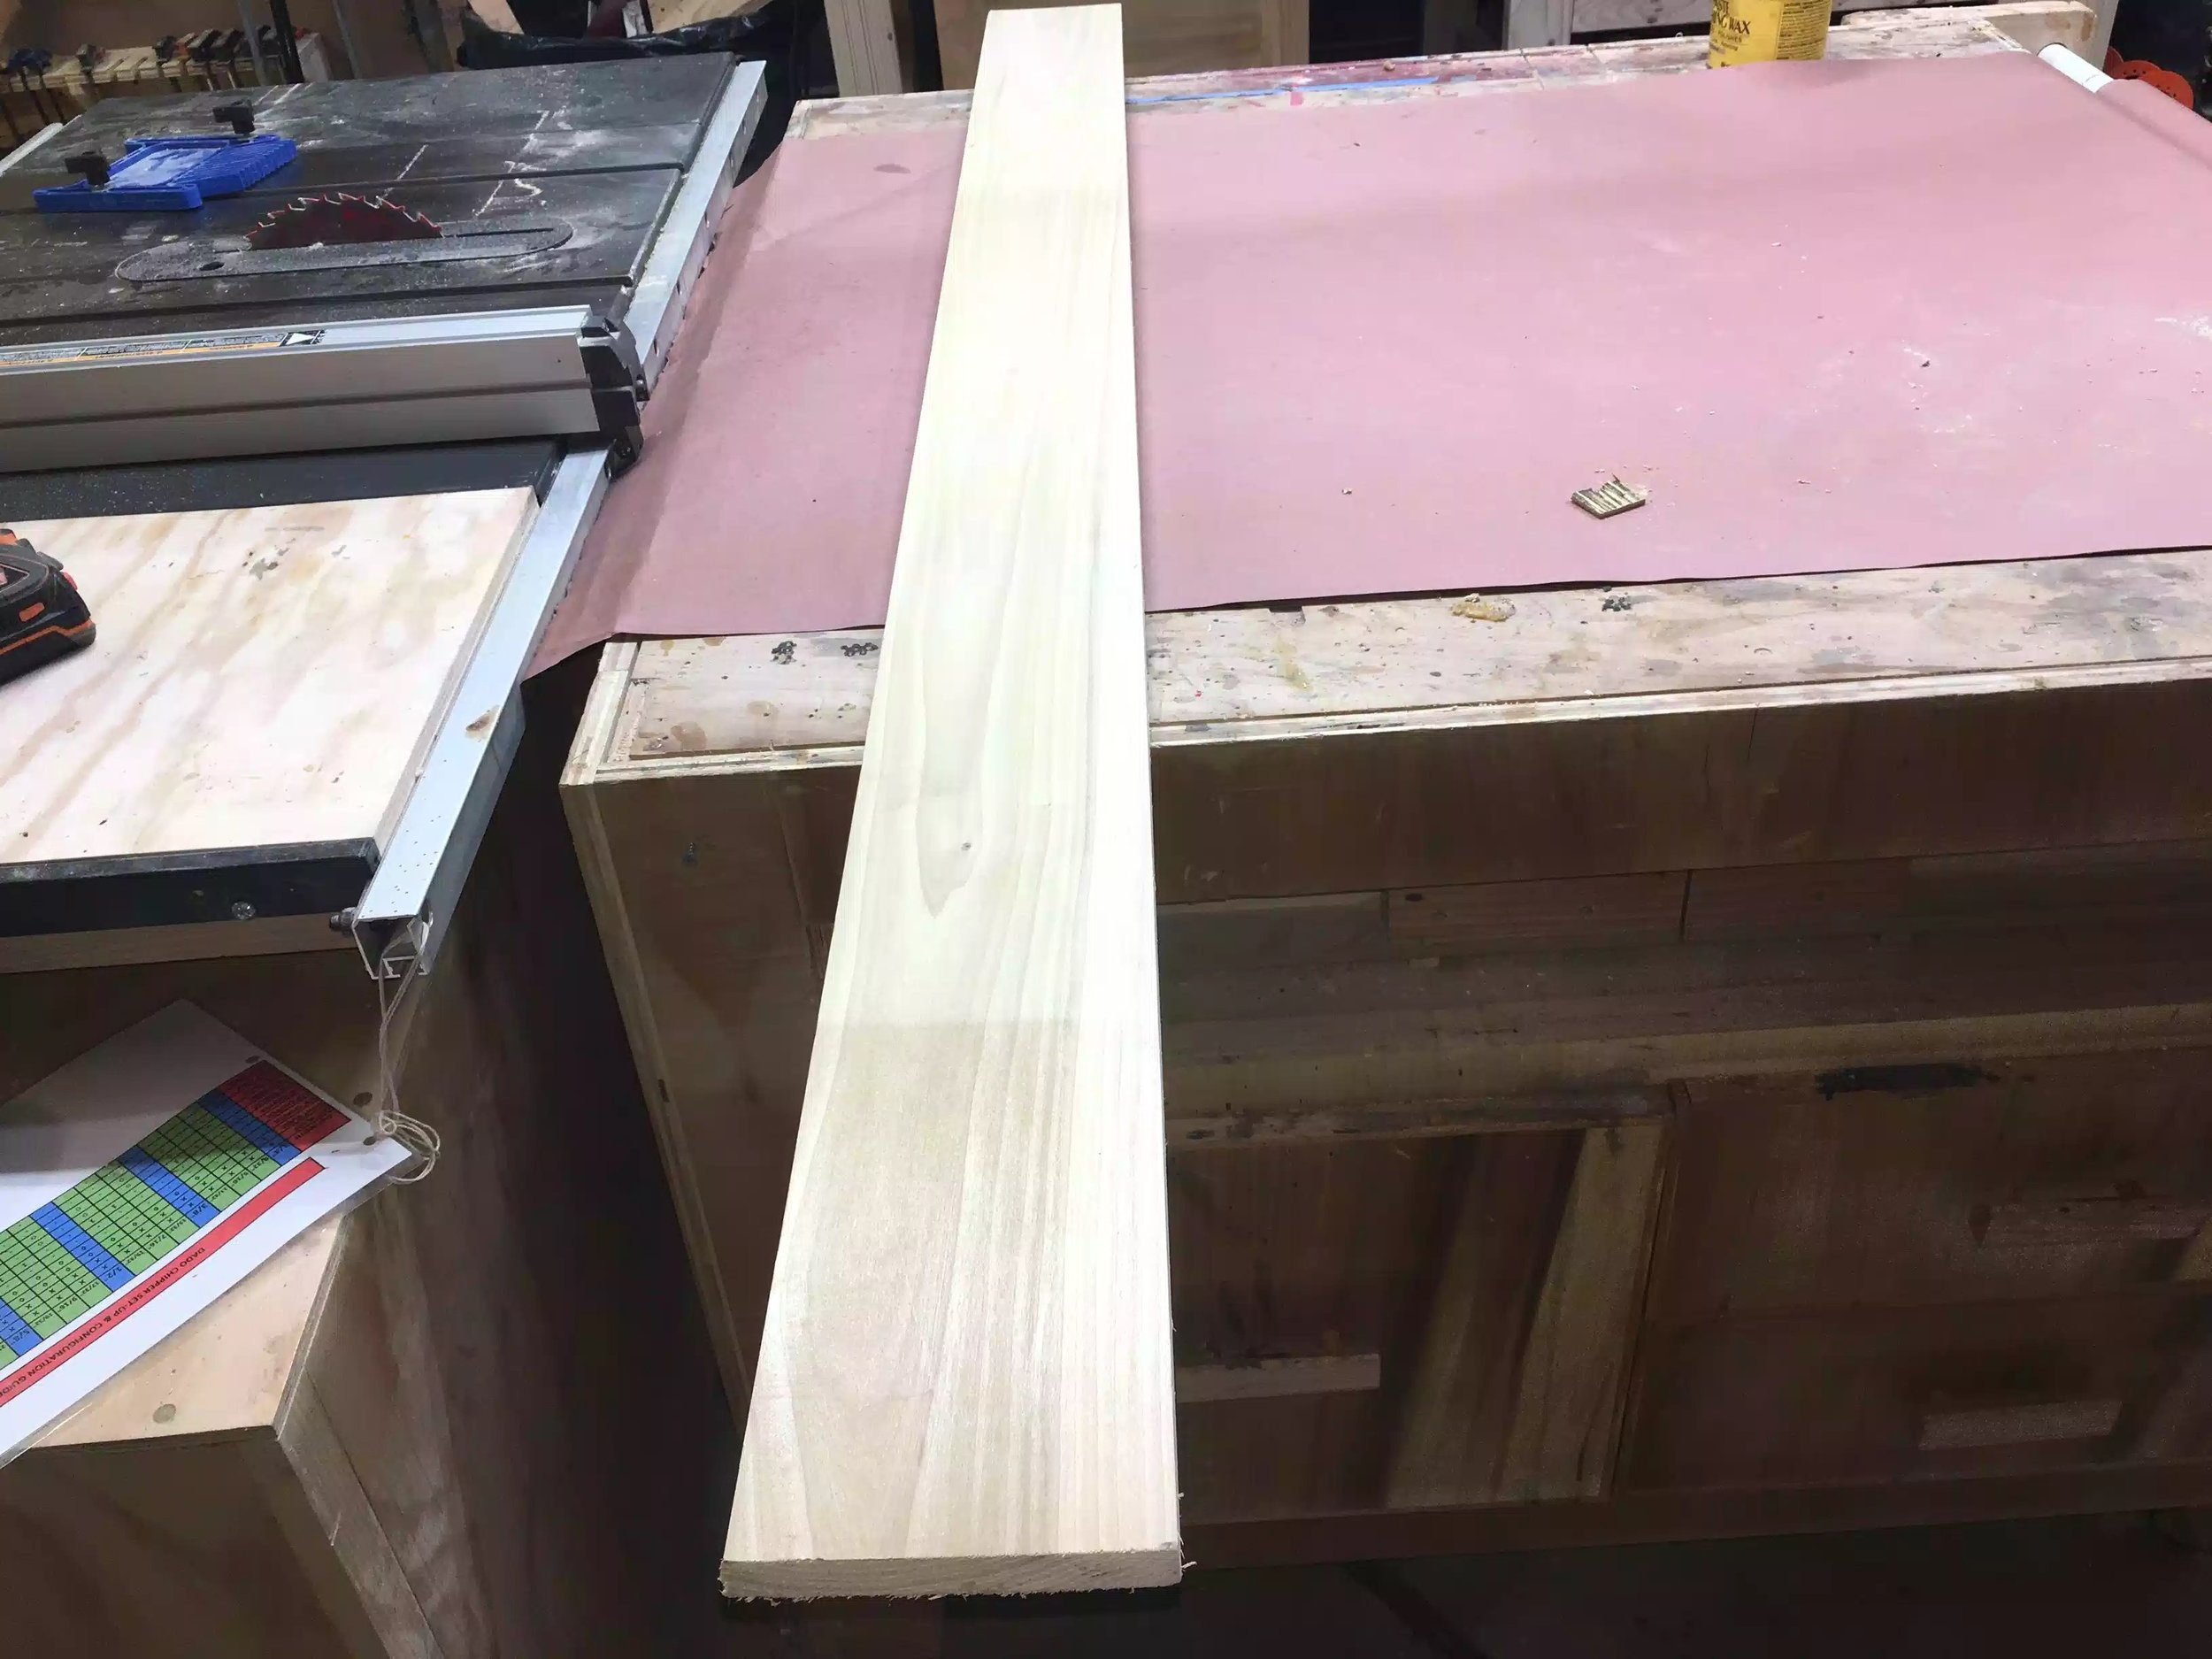 Here is the poplar length of wood that I used for the box.